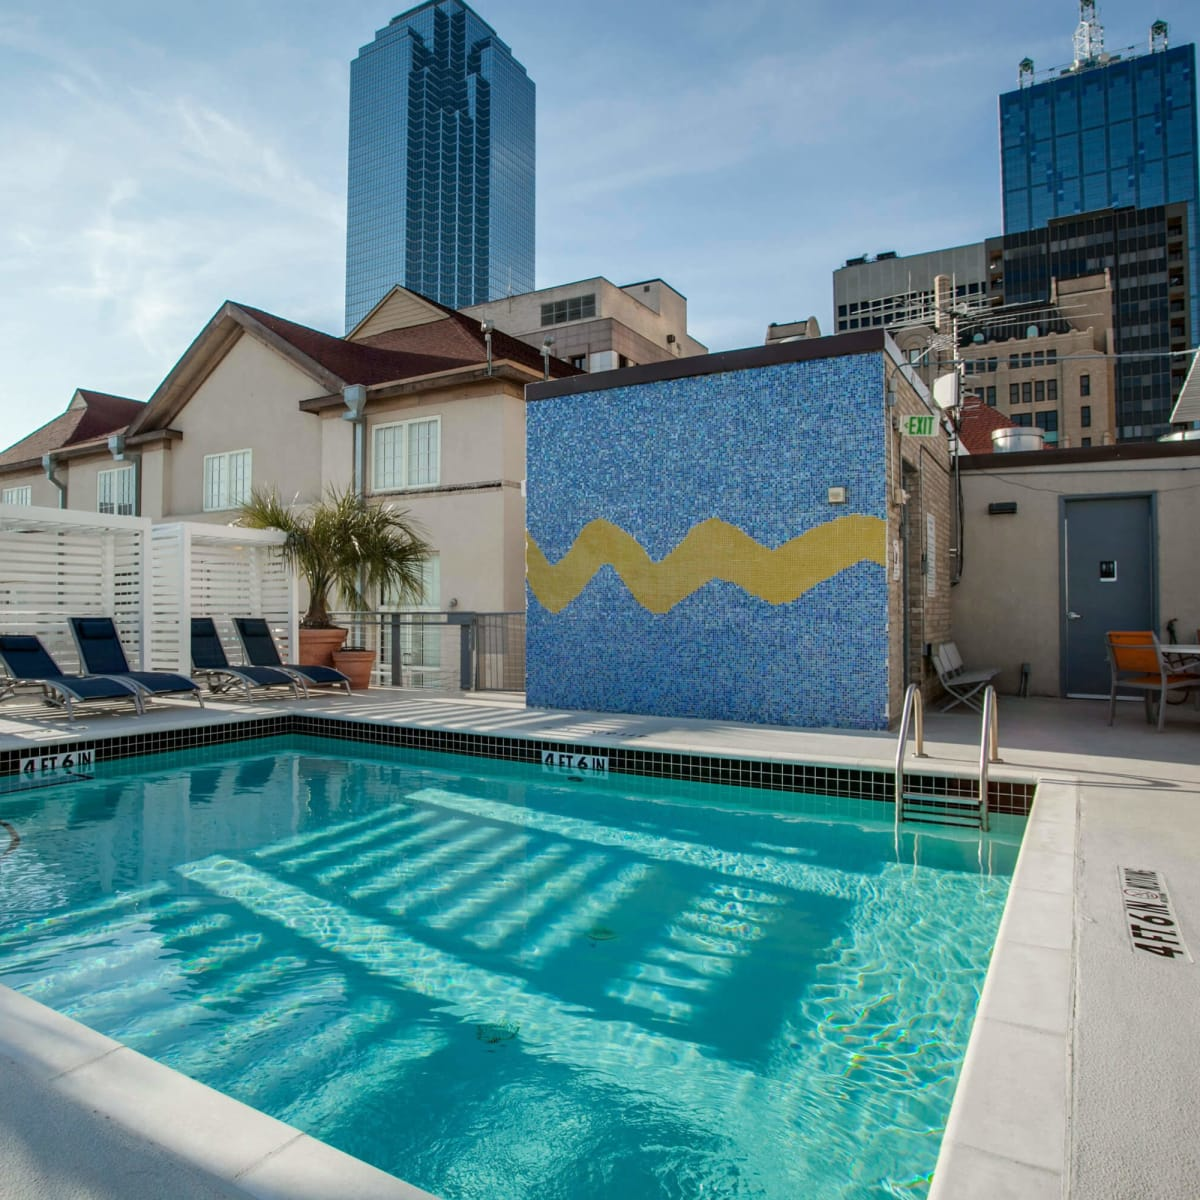 Rooftop pool at 1122 Jackson St. in Dallas